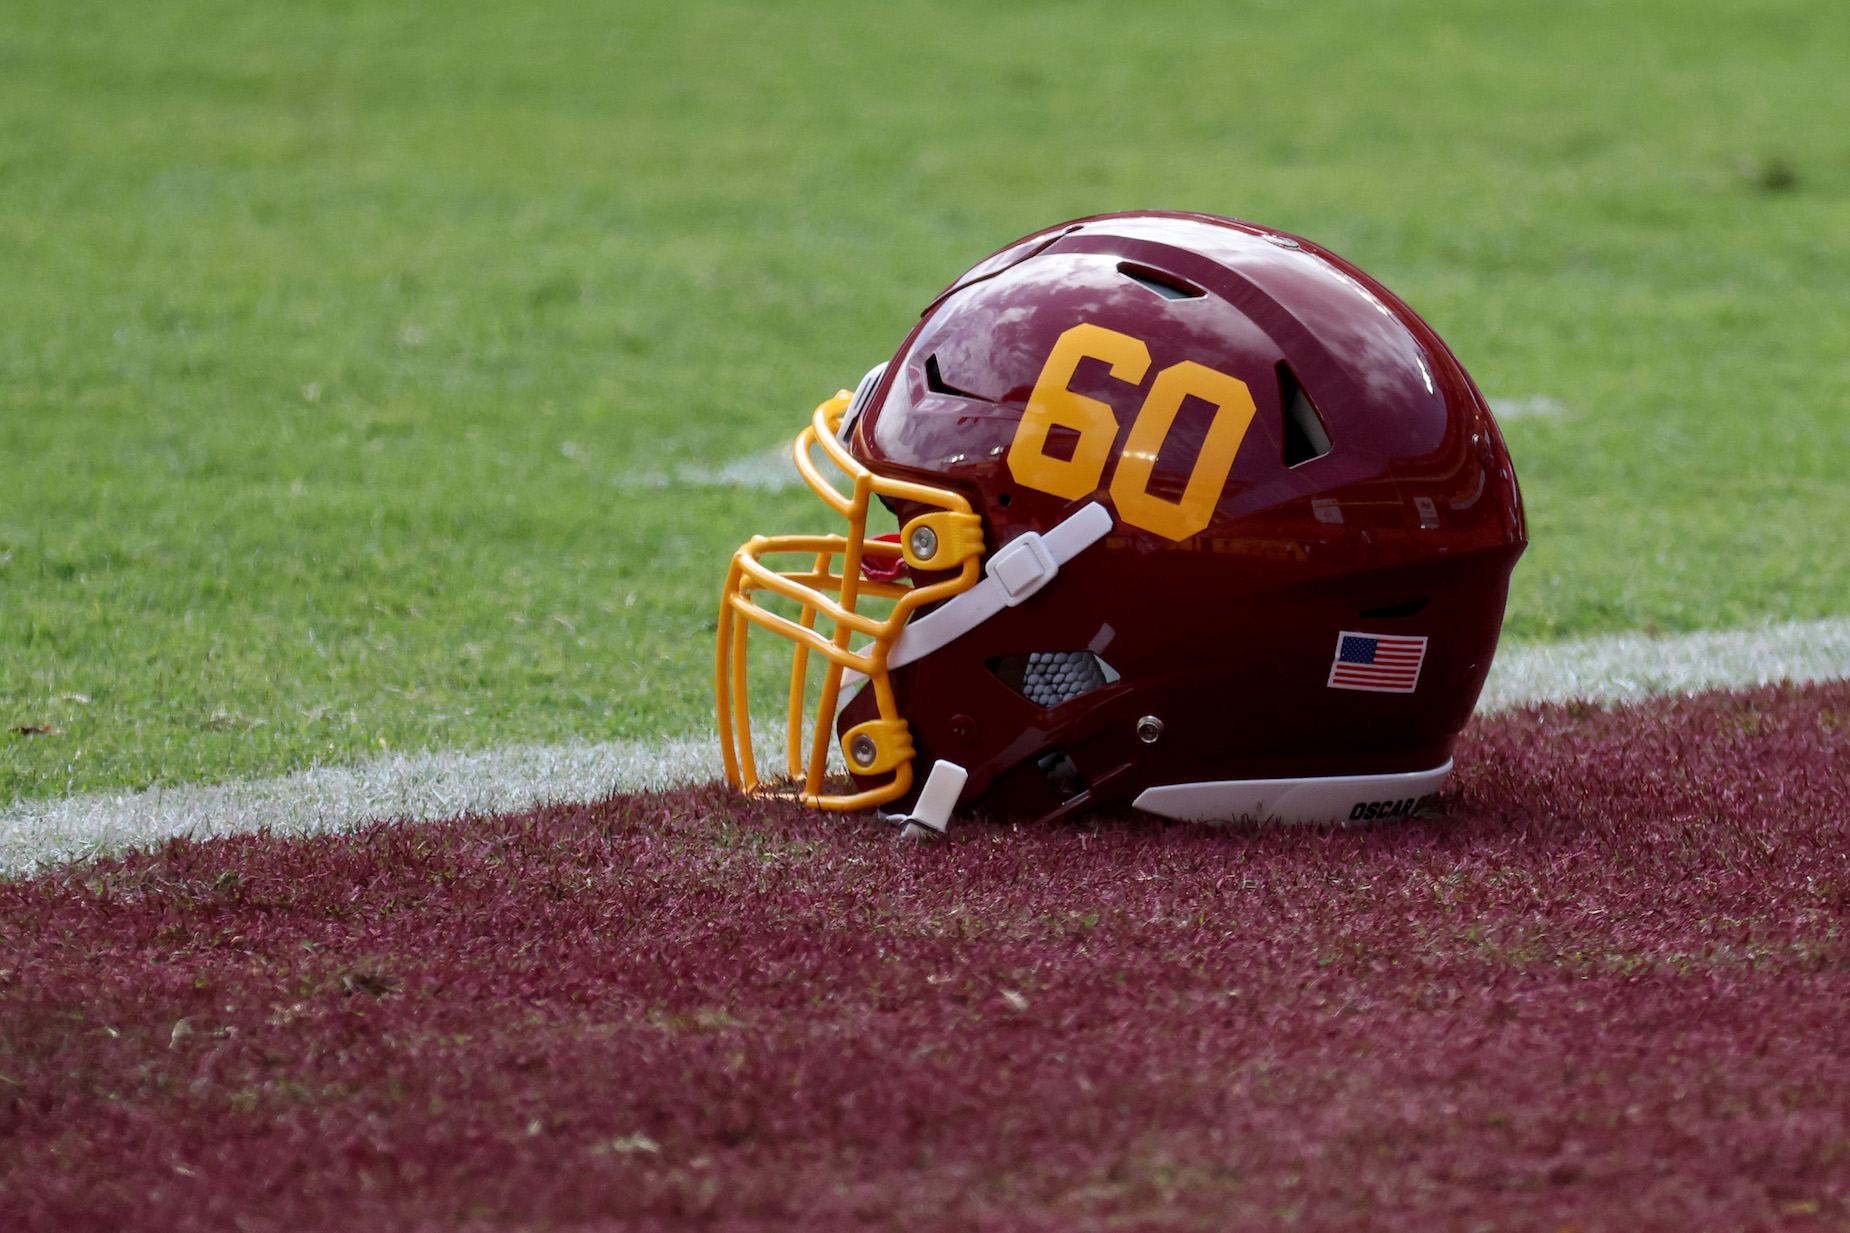 According to Dan Snyder, the Washington Football Team could stick with their current identity.